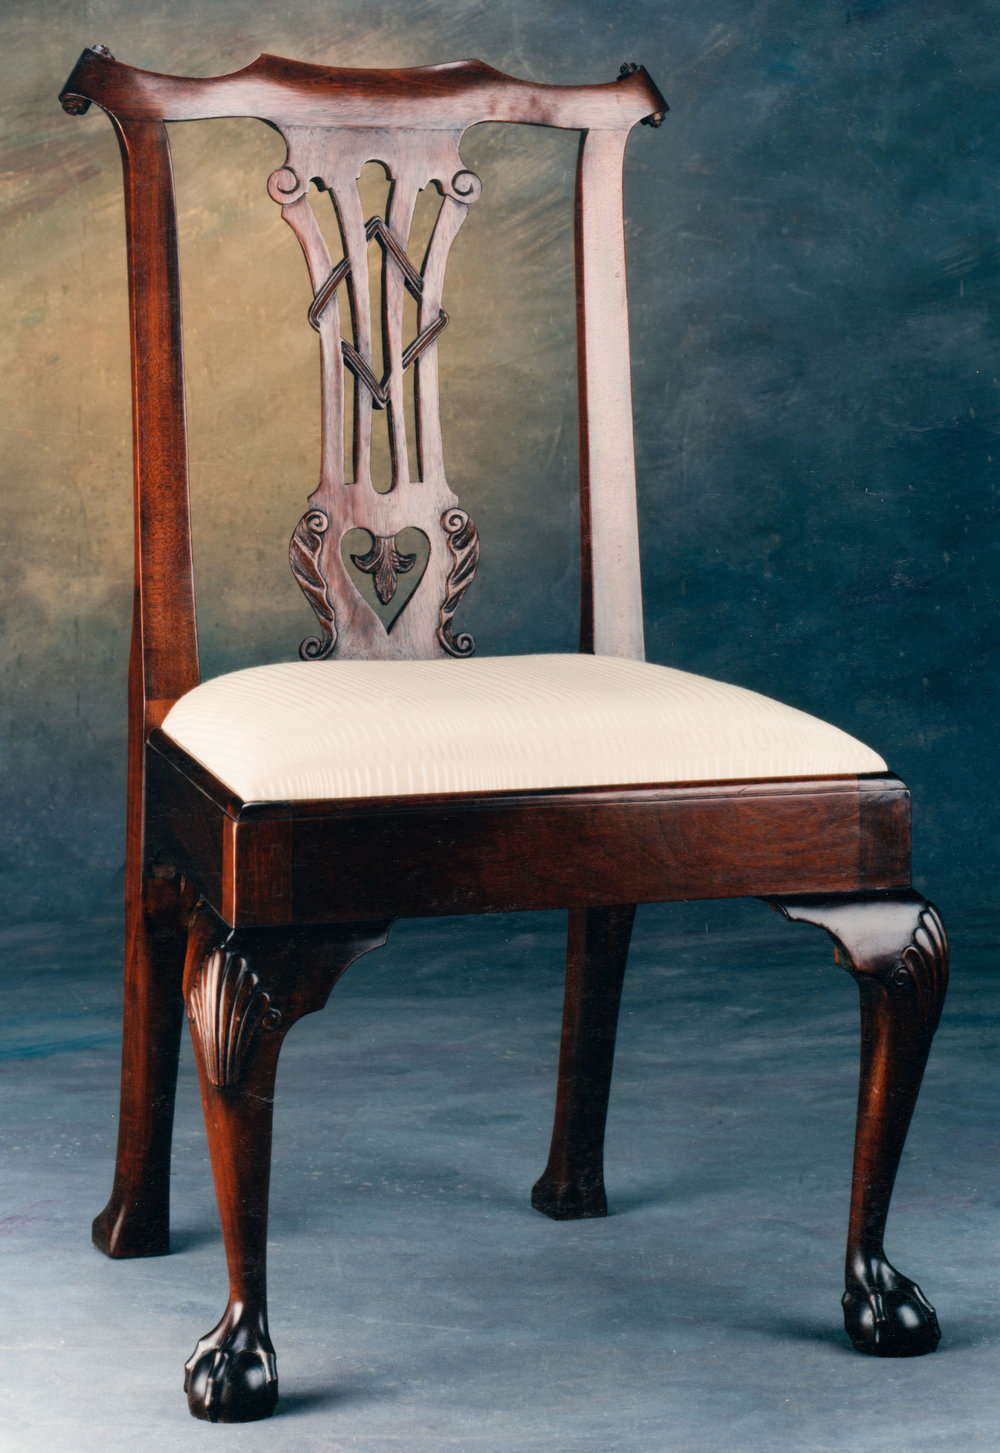 repro-c1750_Southern_chair-01